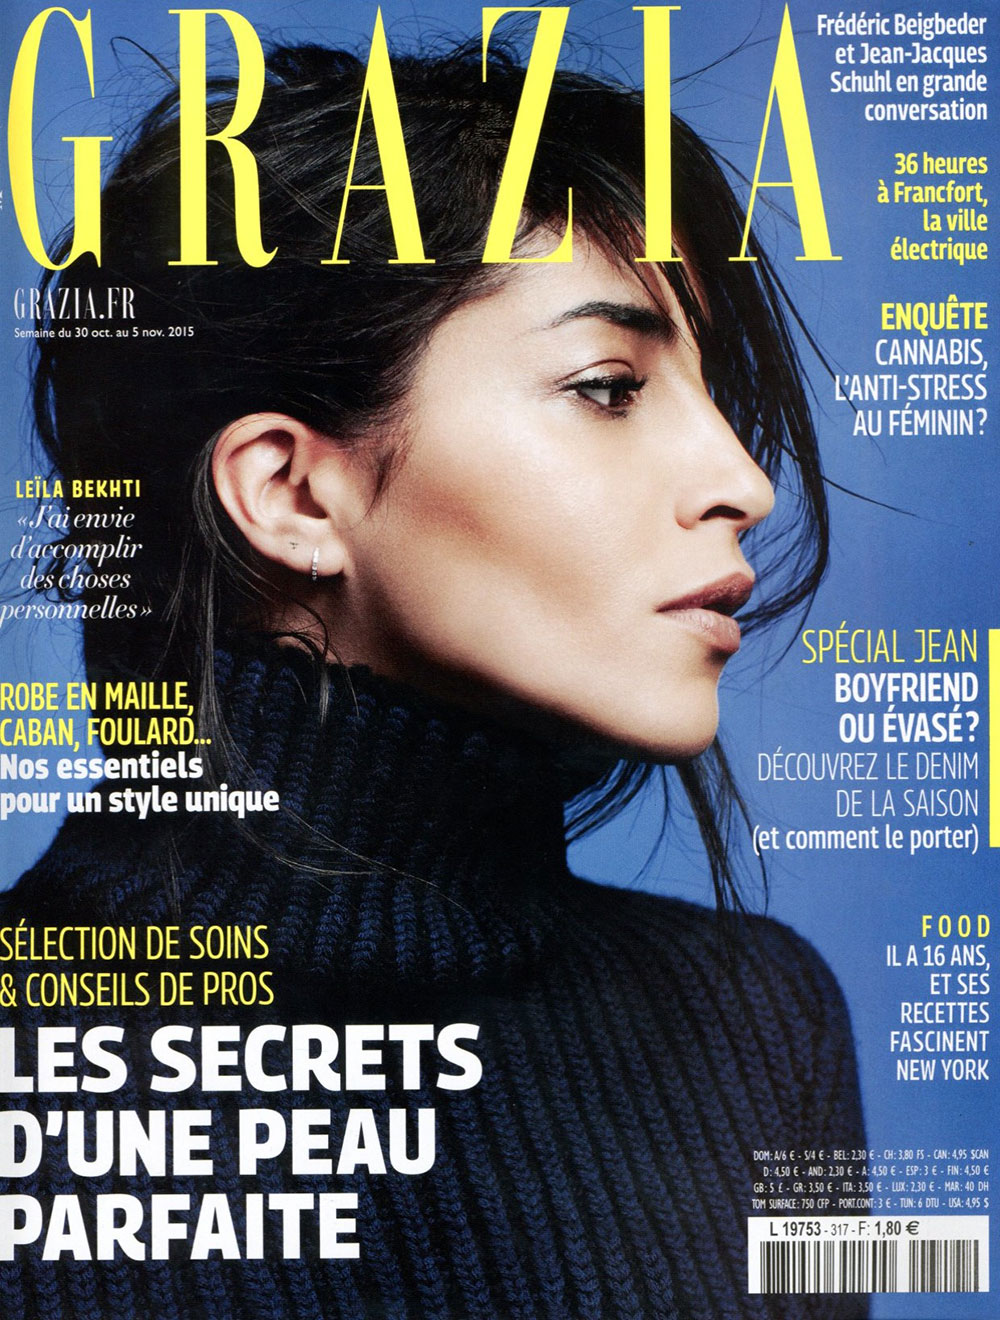 Publication Presse Magazine women fashion GRAZIA from Paris